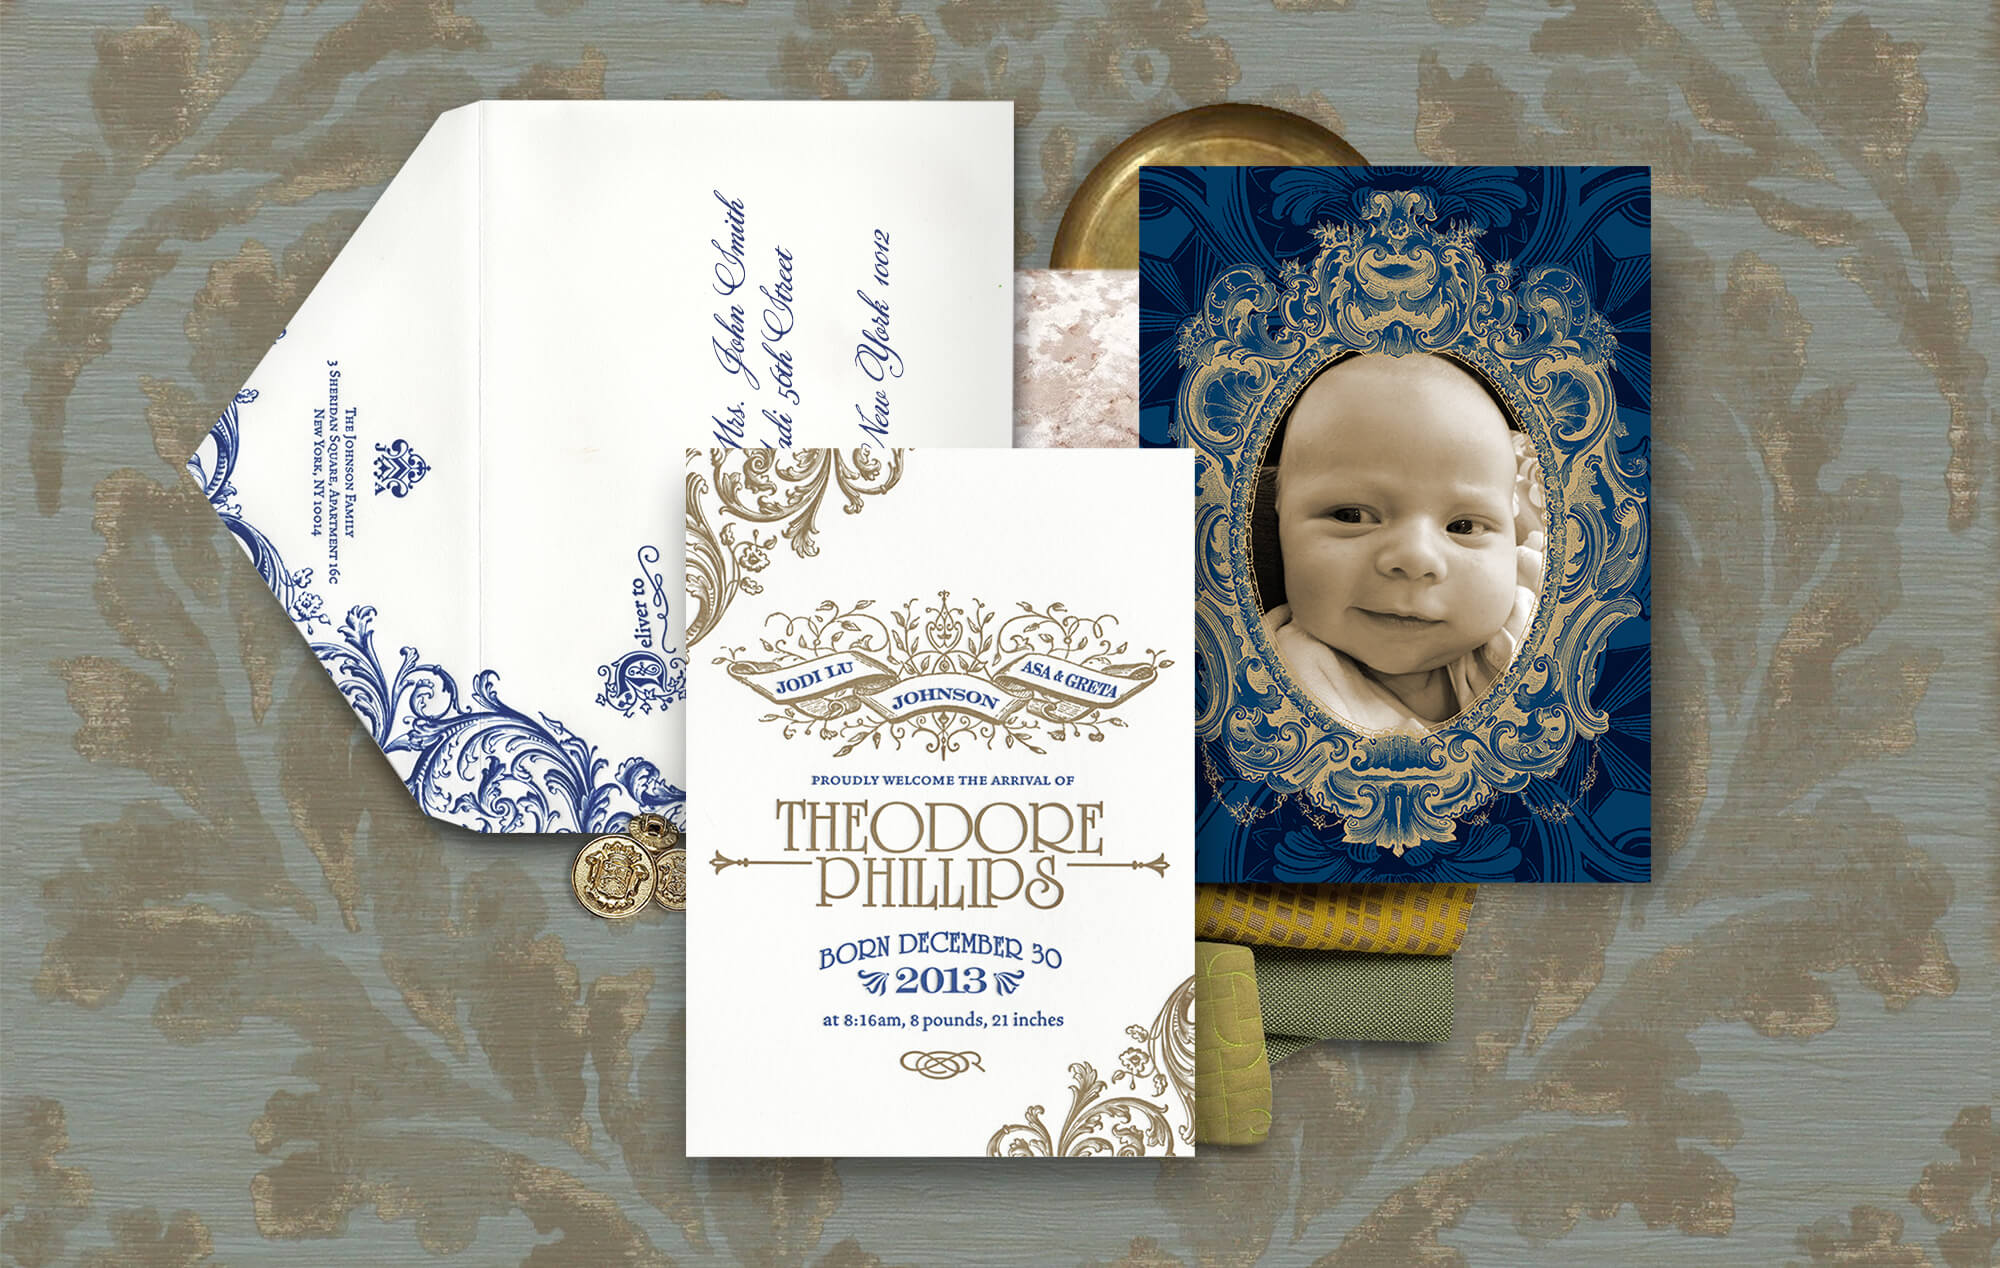 Elegant baby announcement with ornate scrollwork